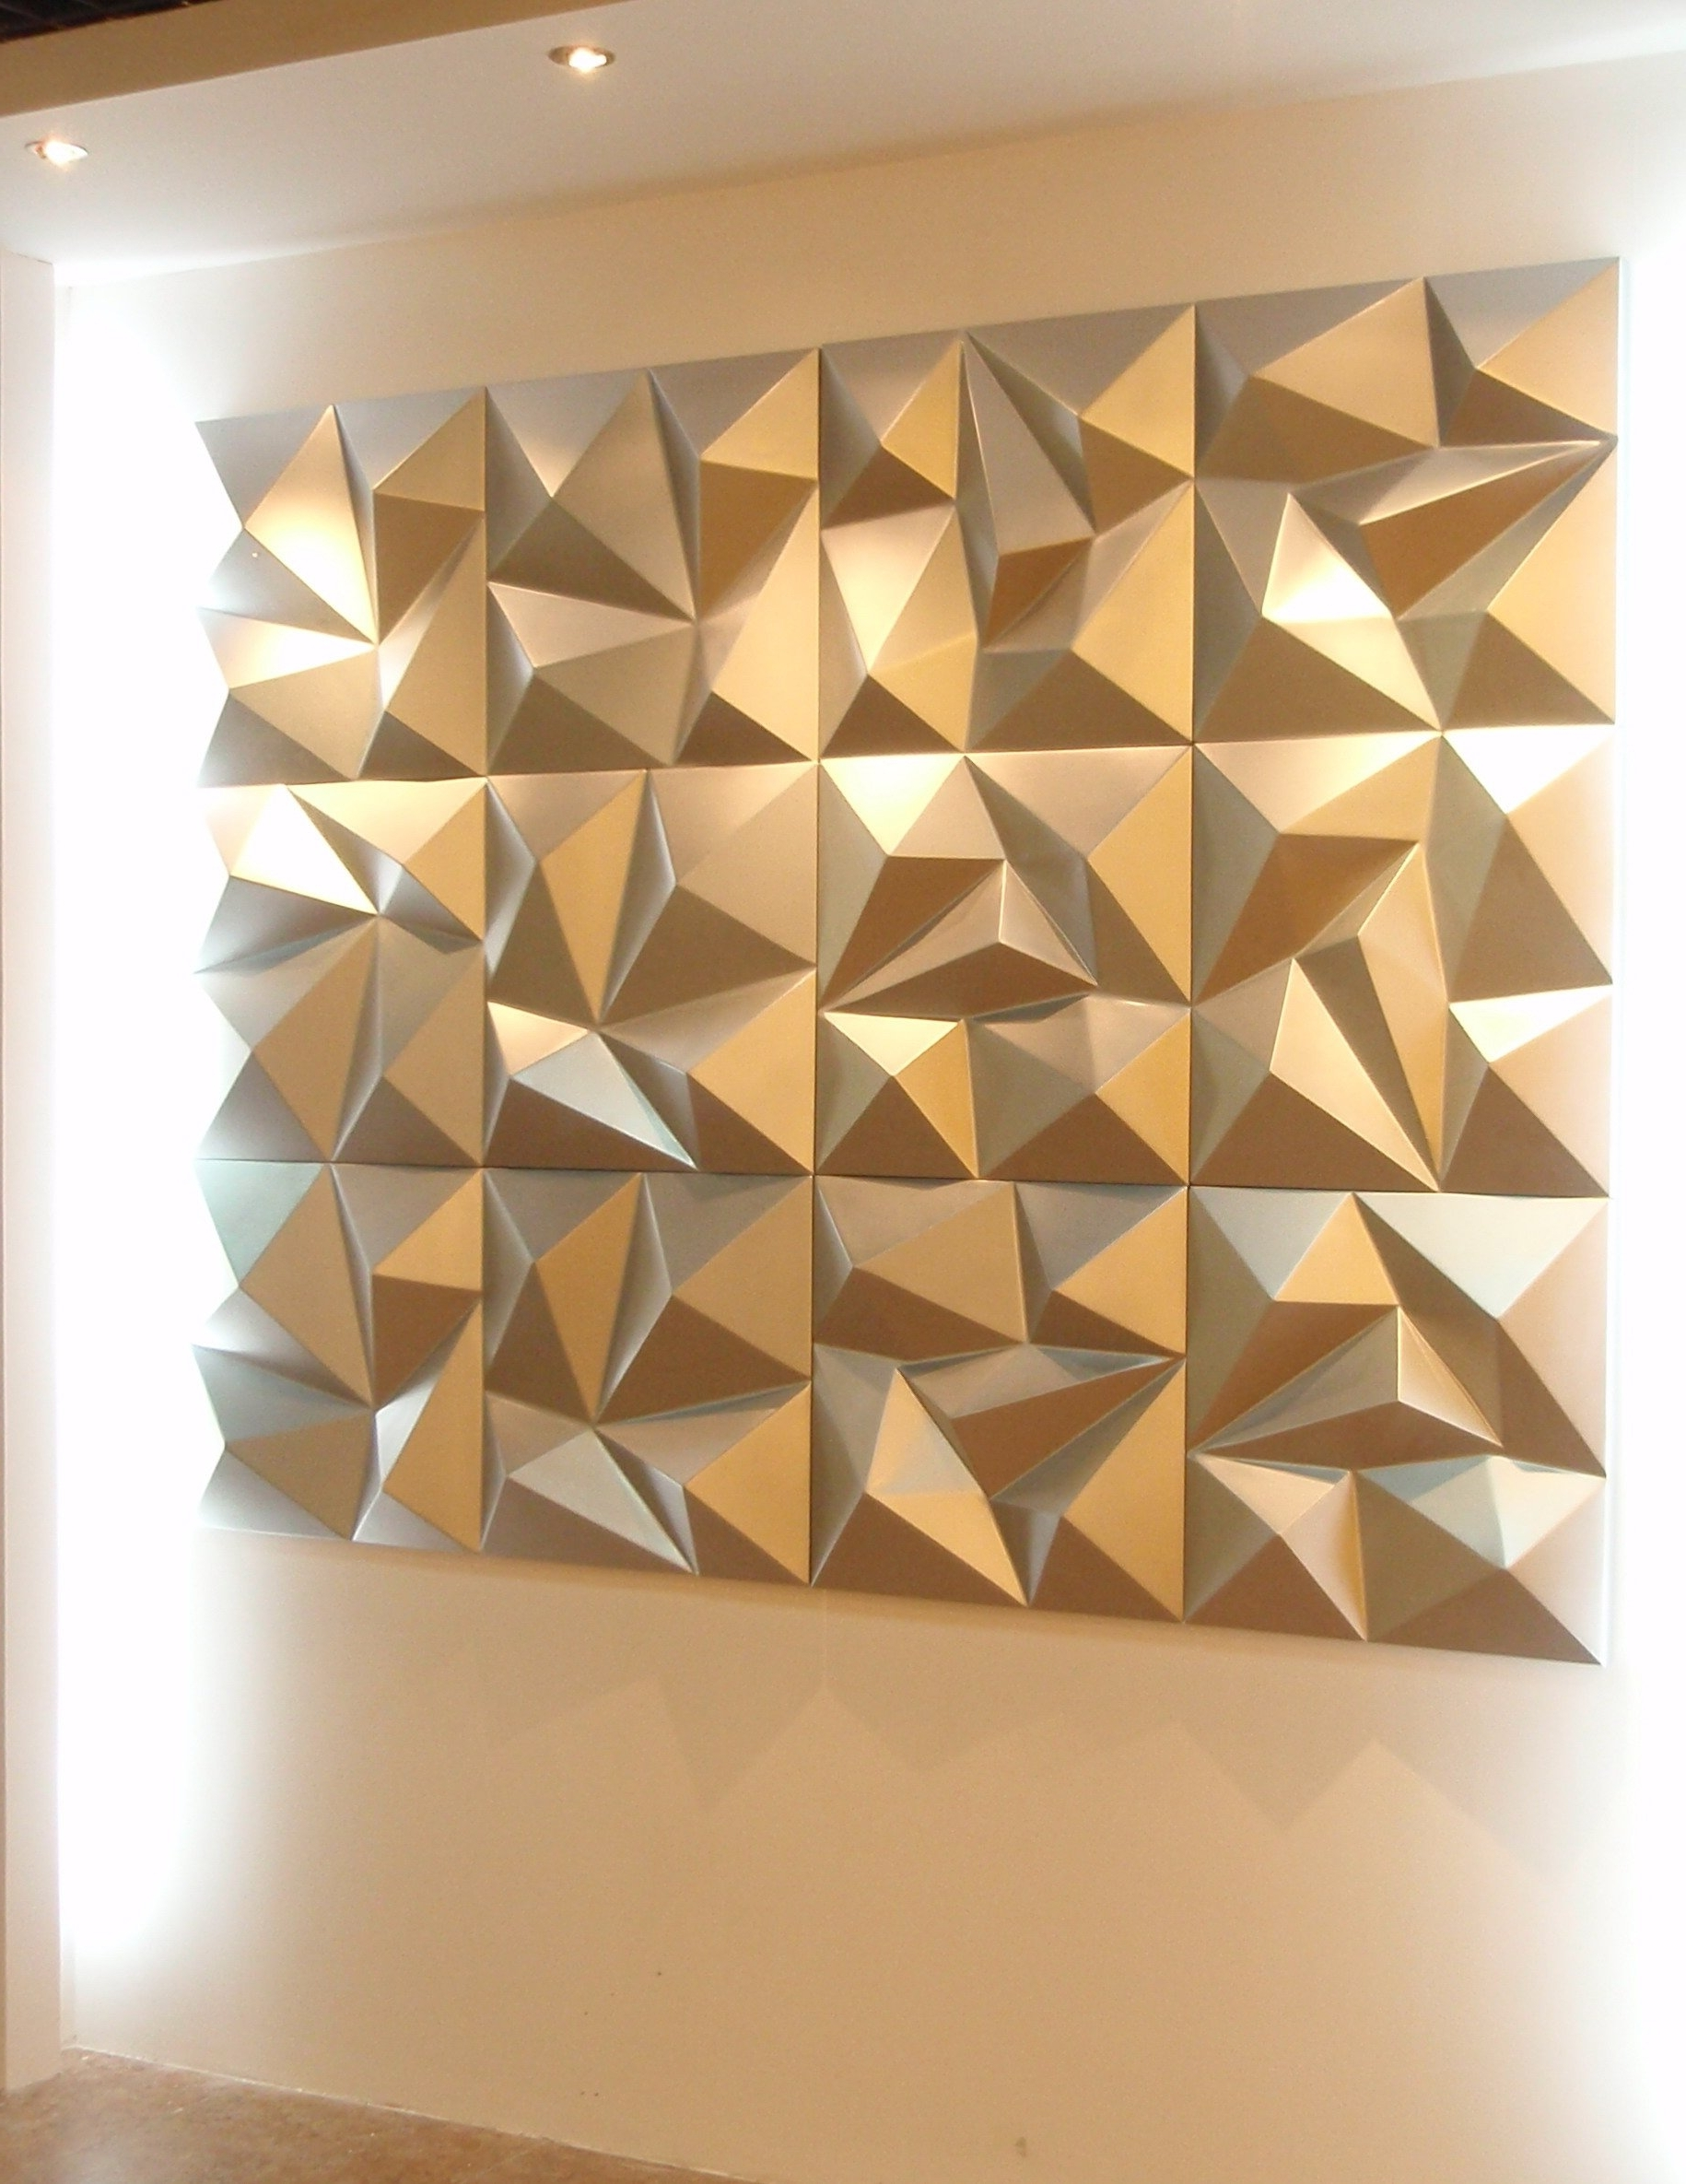 Triwol 3D Interior Decorative Wall Panels Art Panel Glamorous With Most Recent 3D Wall Art And Interiors (View 13 of 15)